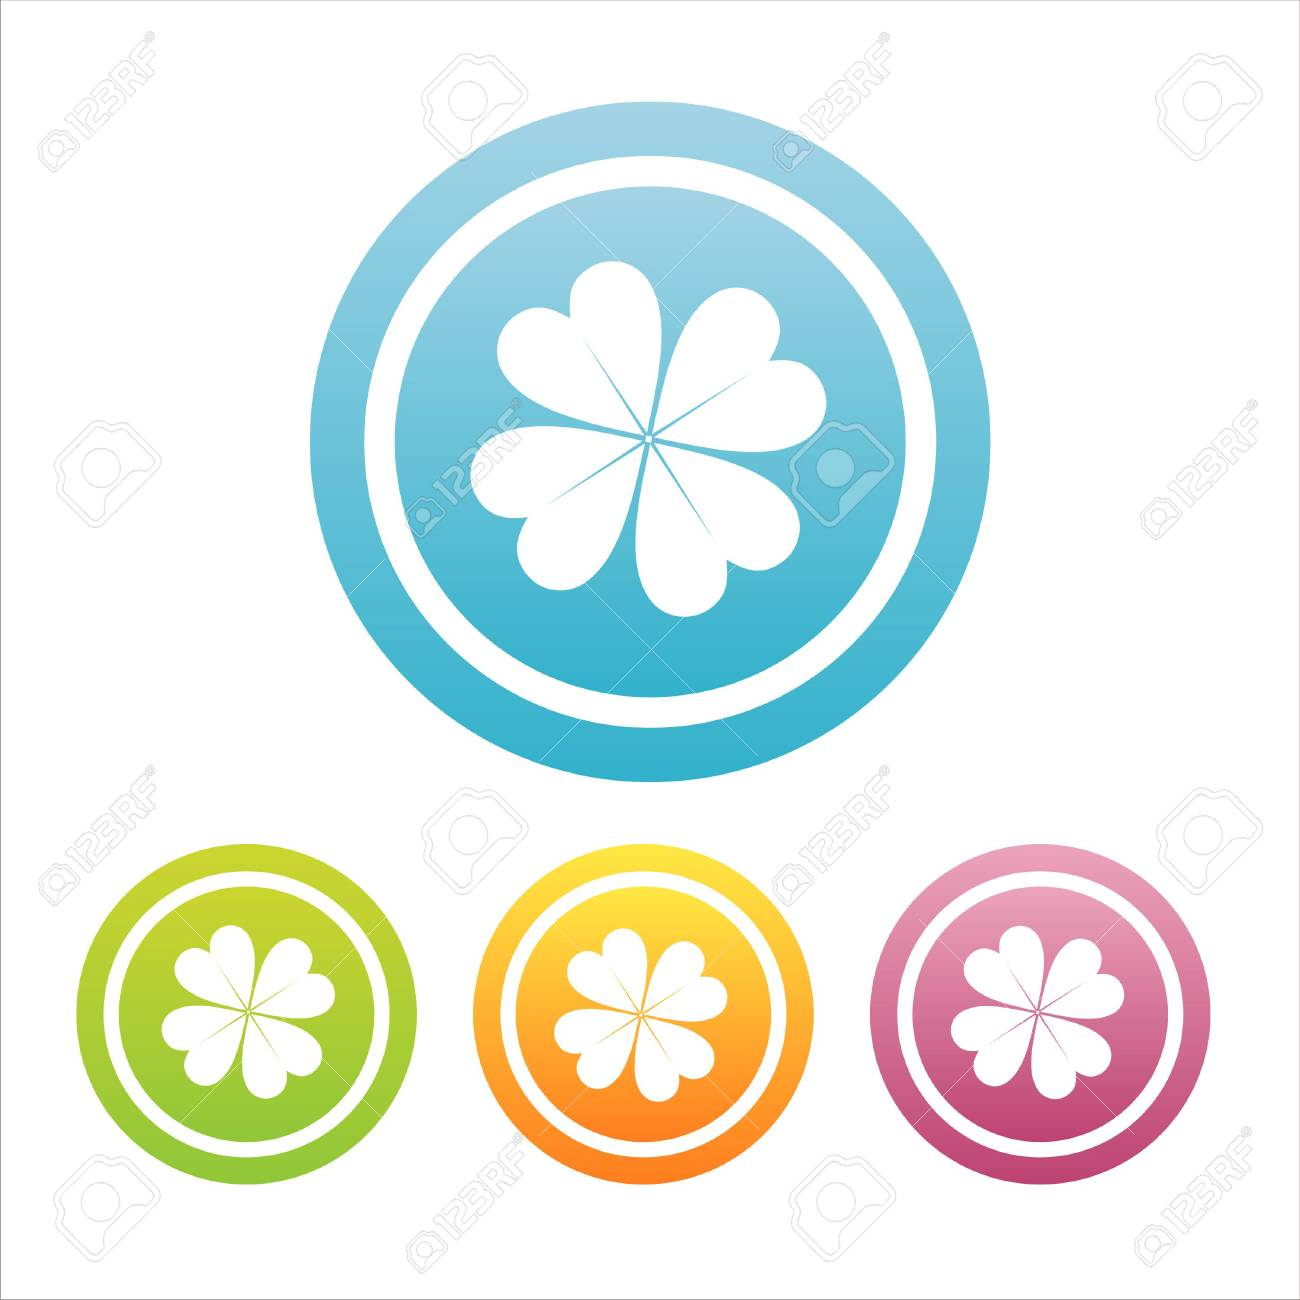 set of 4 colorful clover signs Stock Vector - 7537991